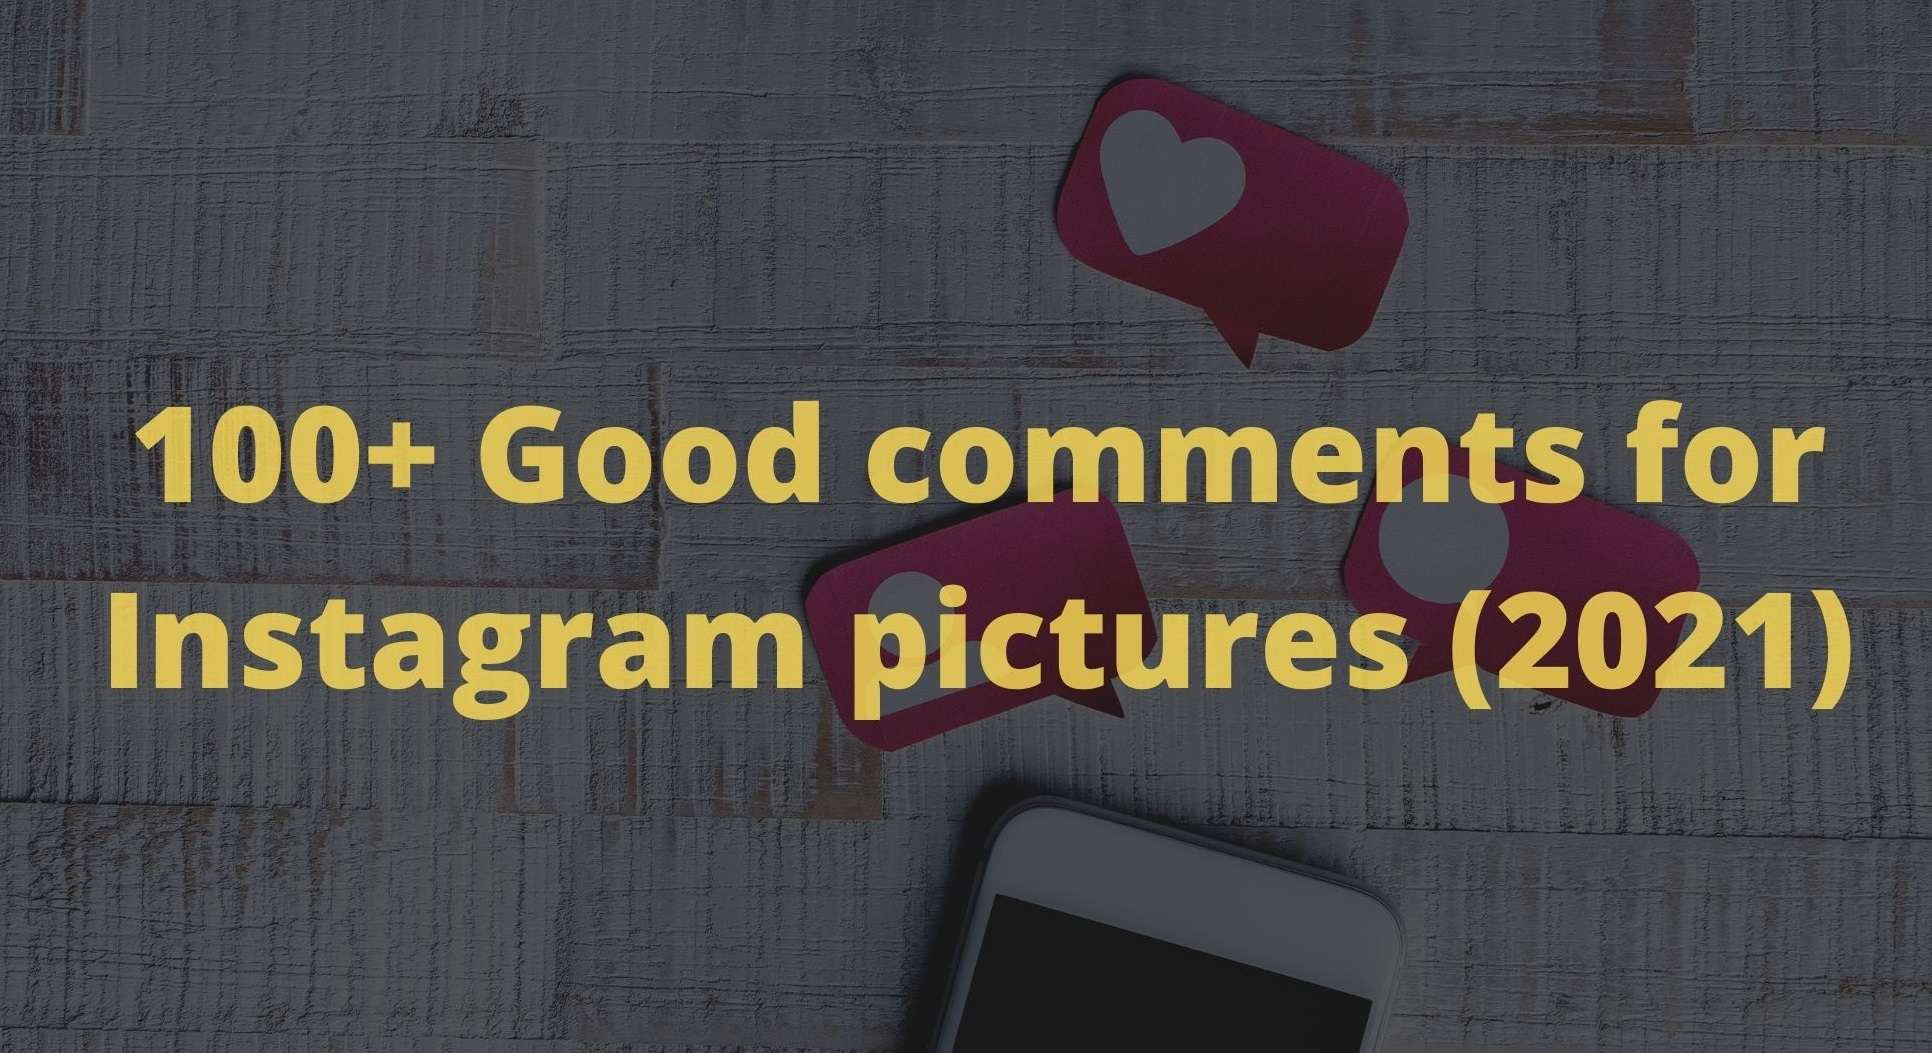 100+ Good comments for Instagram pictures (2021)